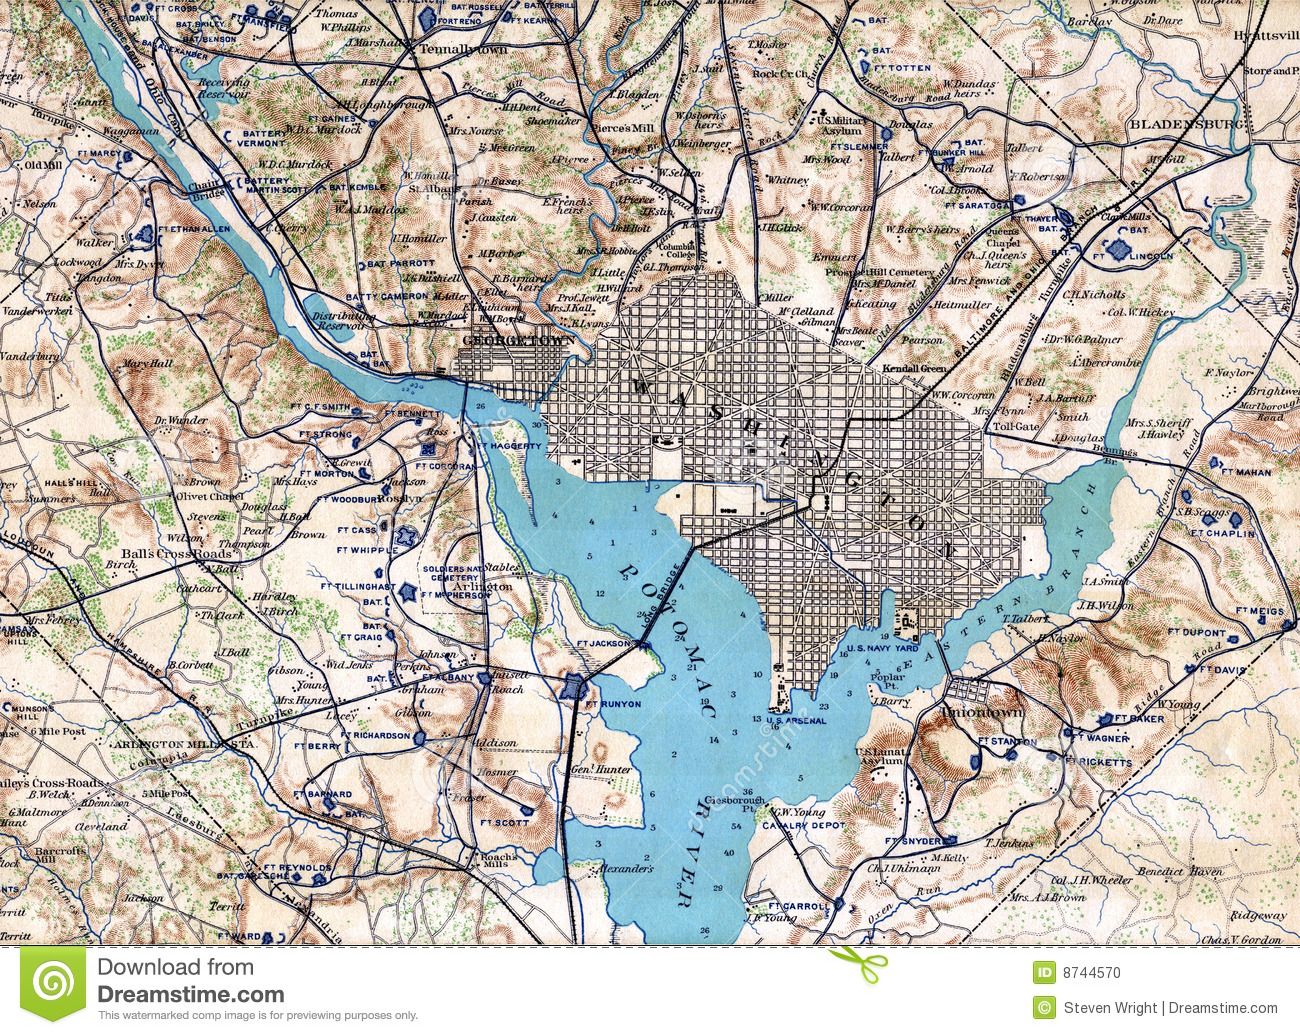 Map Washington DC Stock Photo Image - Washington dc map download